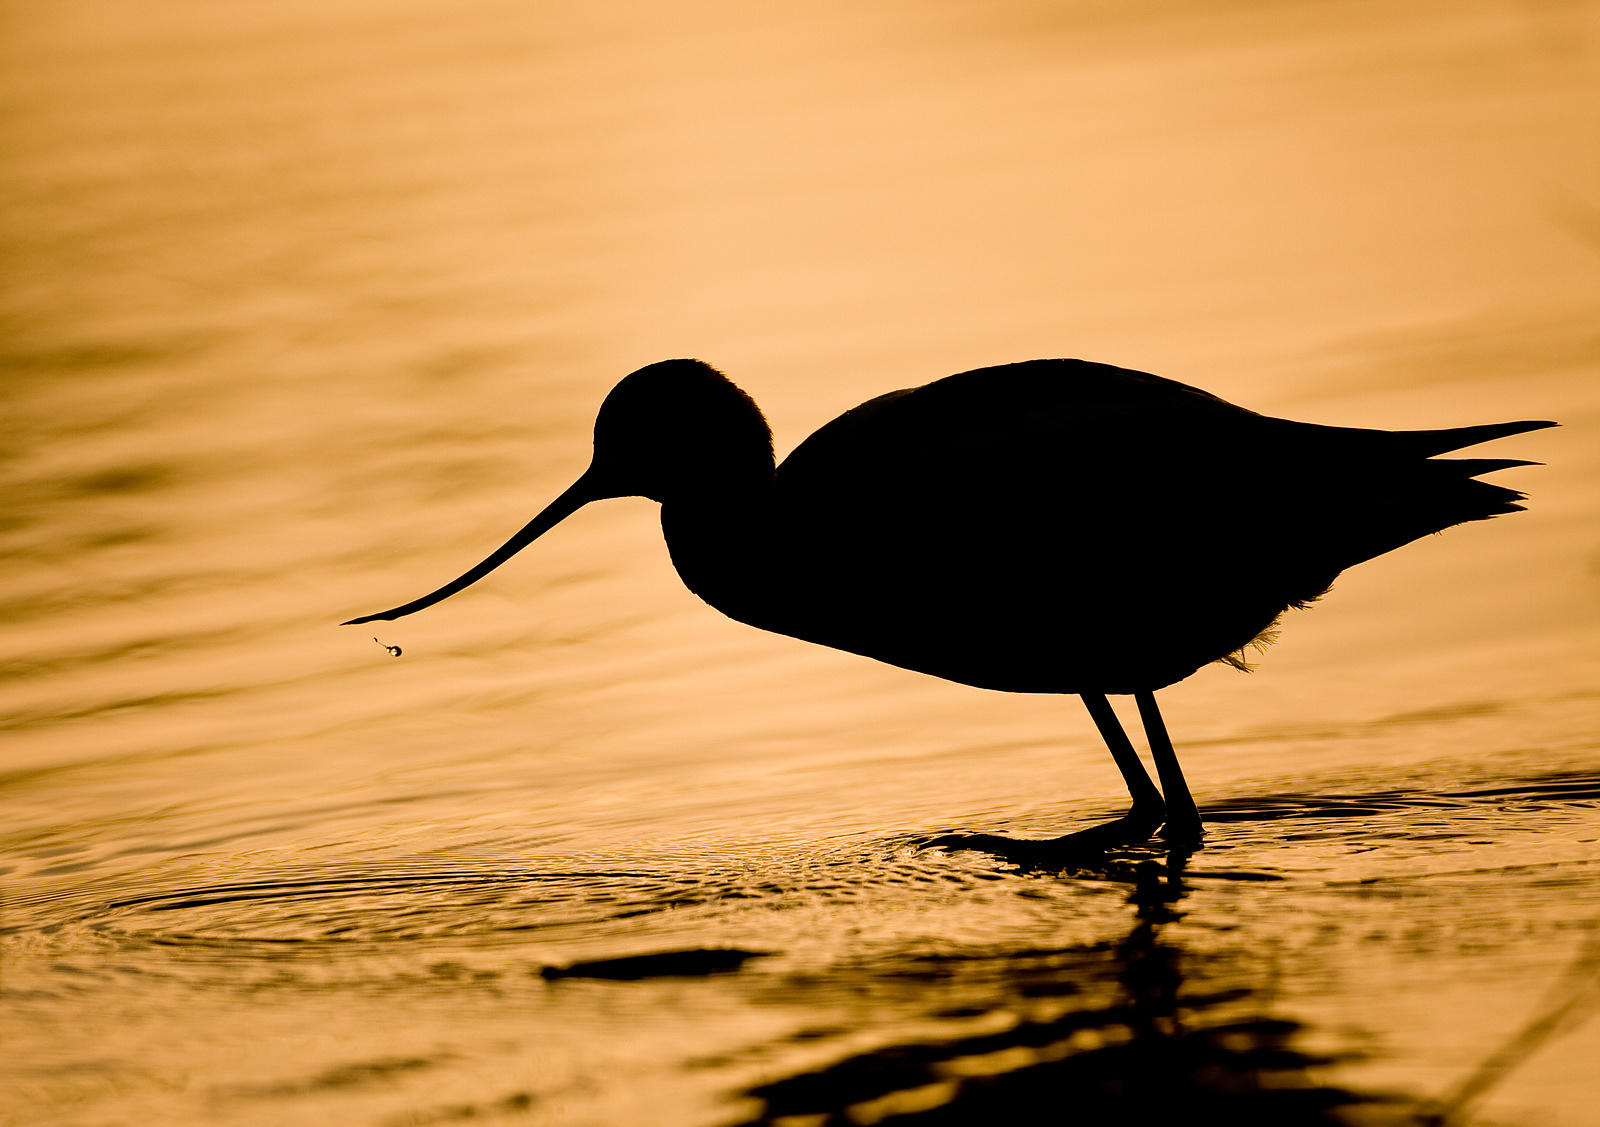 Avocet and Water Droplet